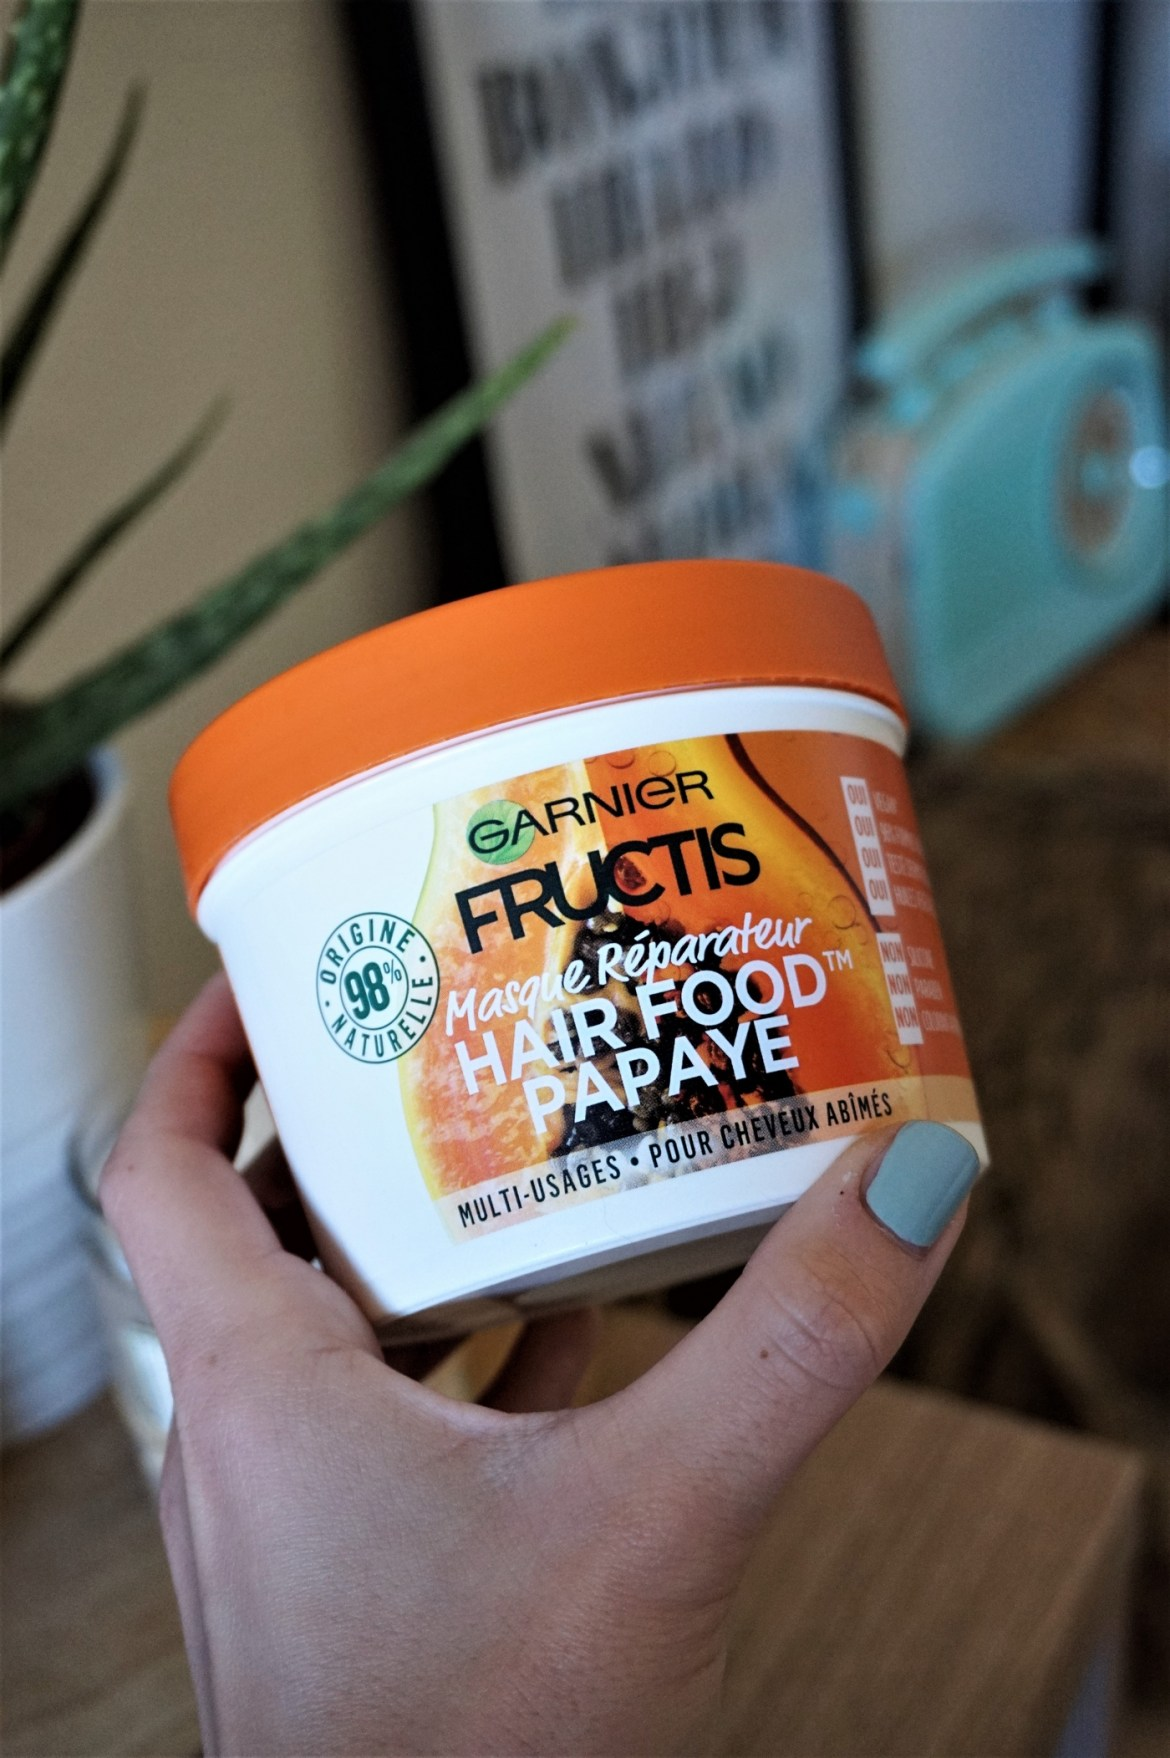 Revue Masque Hair Food Fructis Granier - La Petite Frenchie